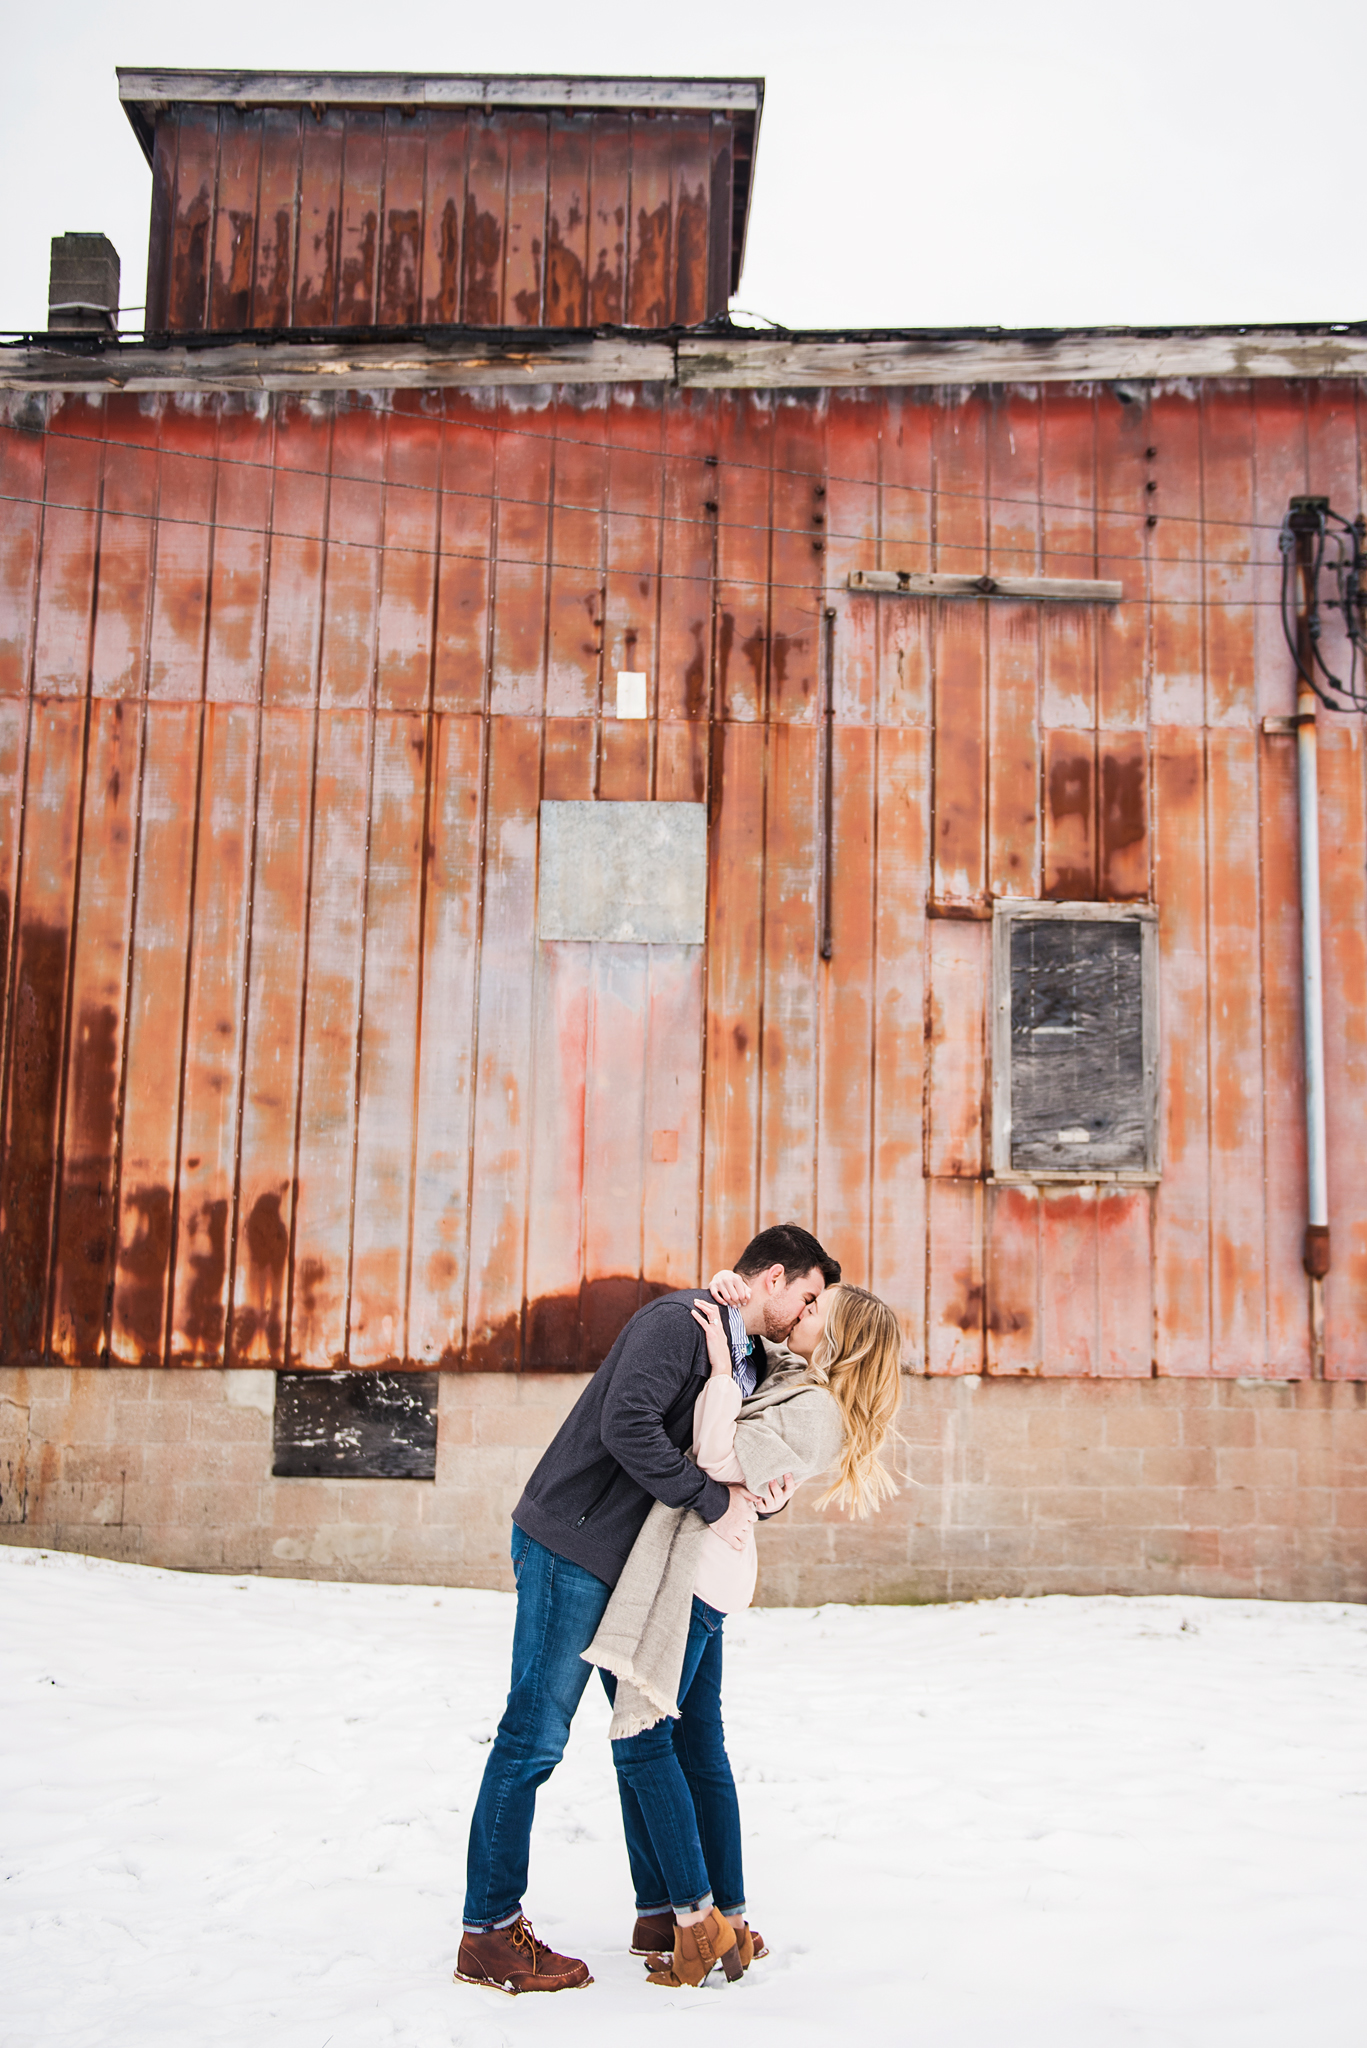 Schoen_Place_Rochester_Engagement_Session_JILL_STUDIO_Rochester_NY_Photographer_DSC_1235.jpg